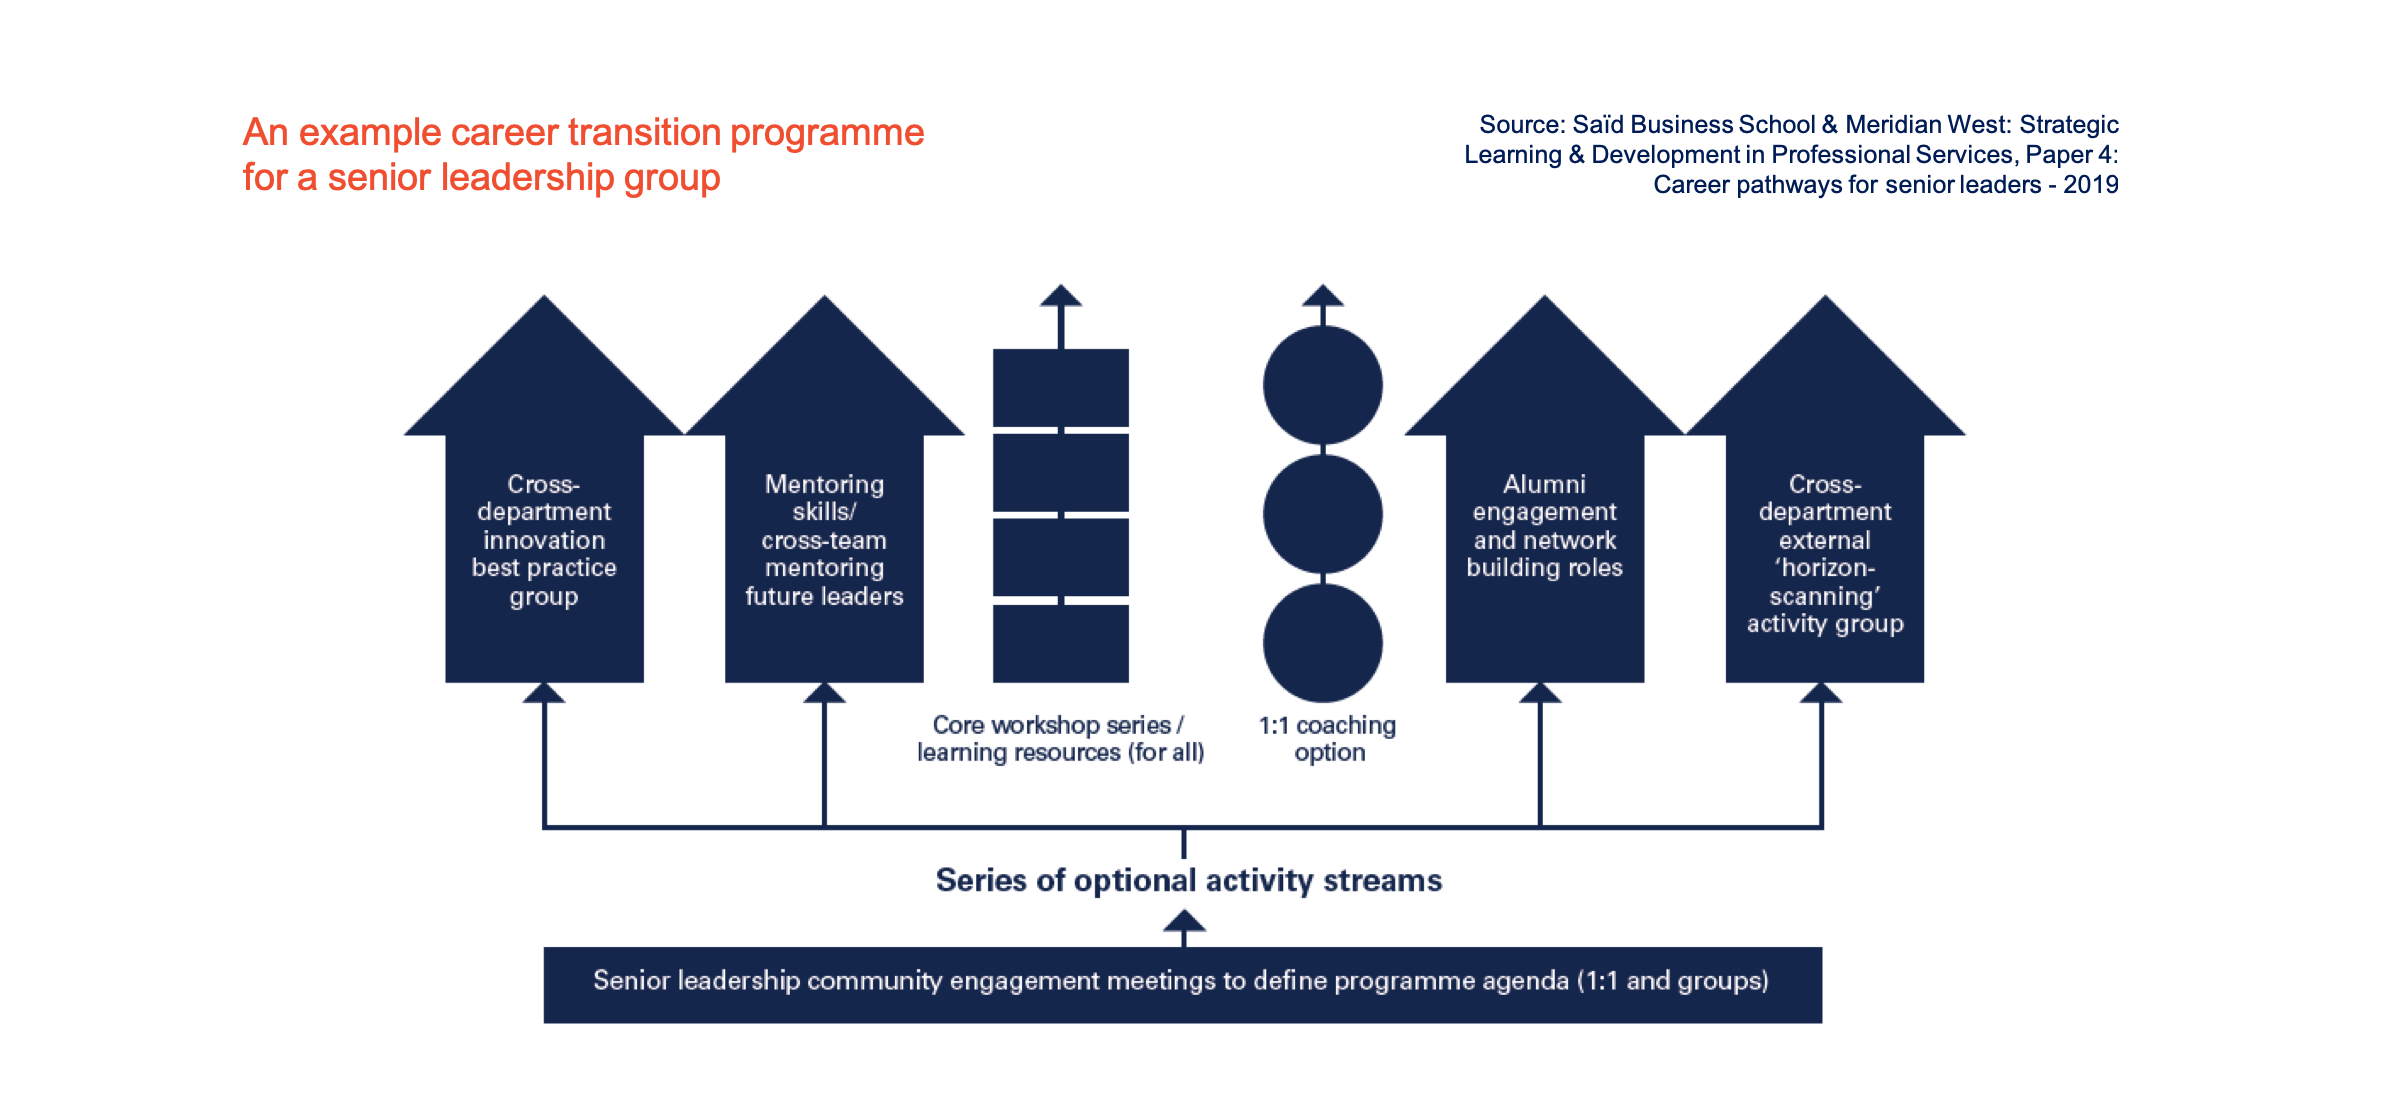 An example career transition programme for a senior leadership group